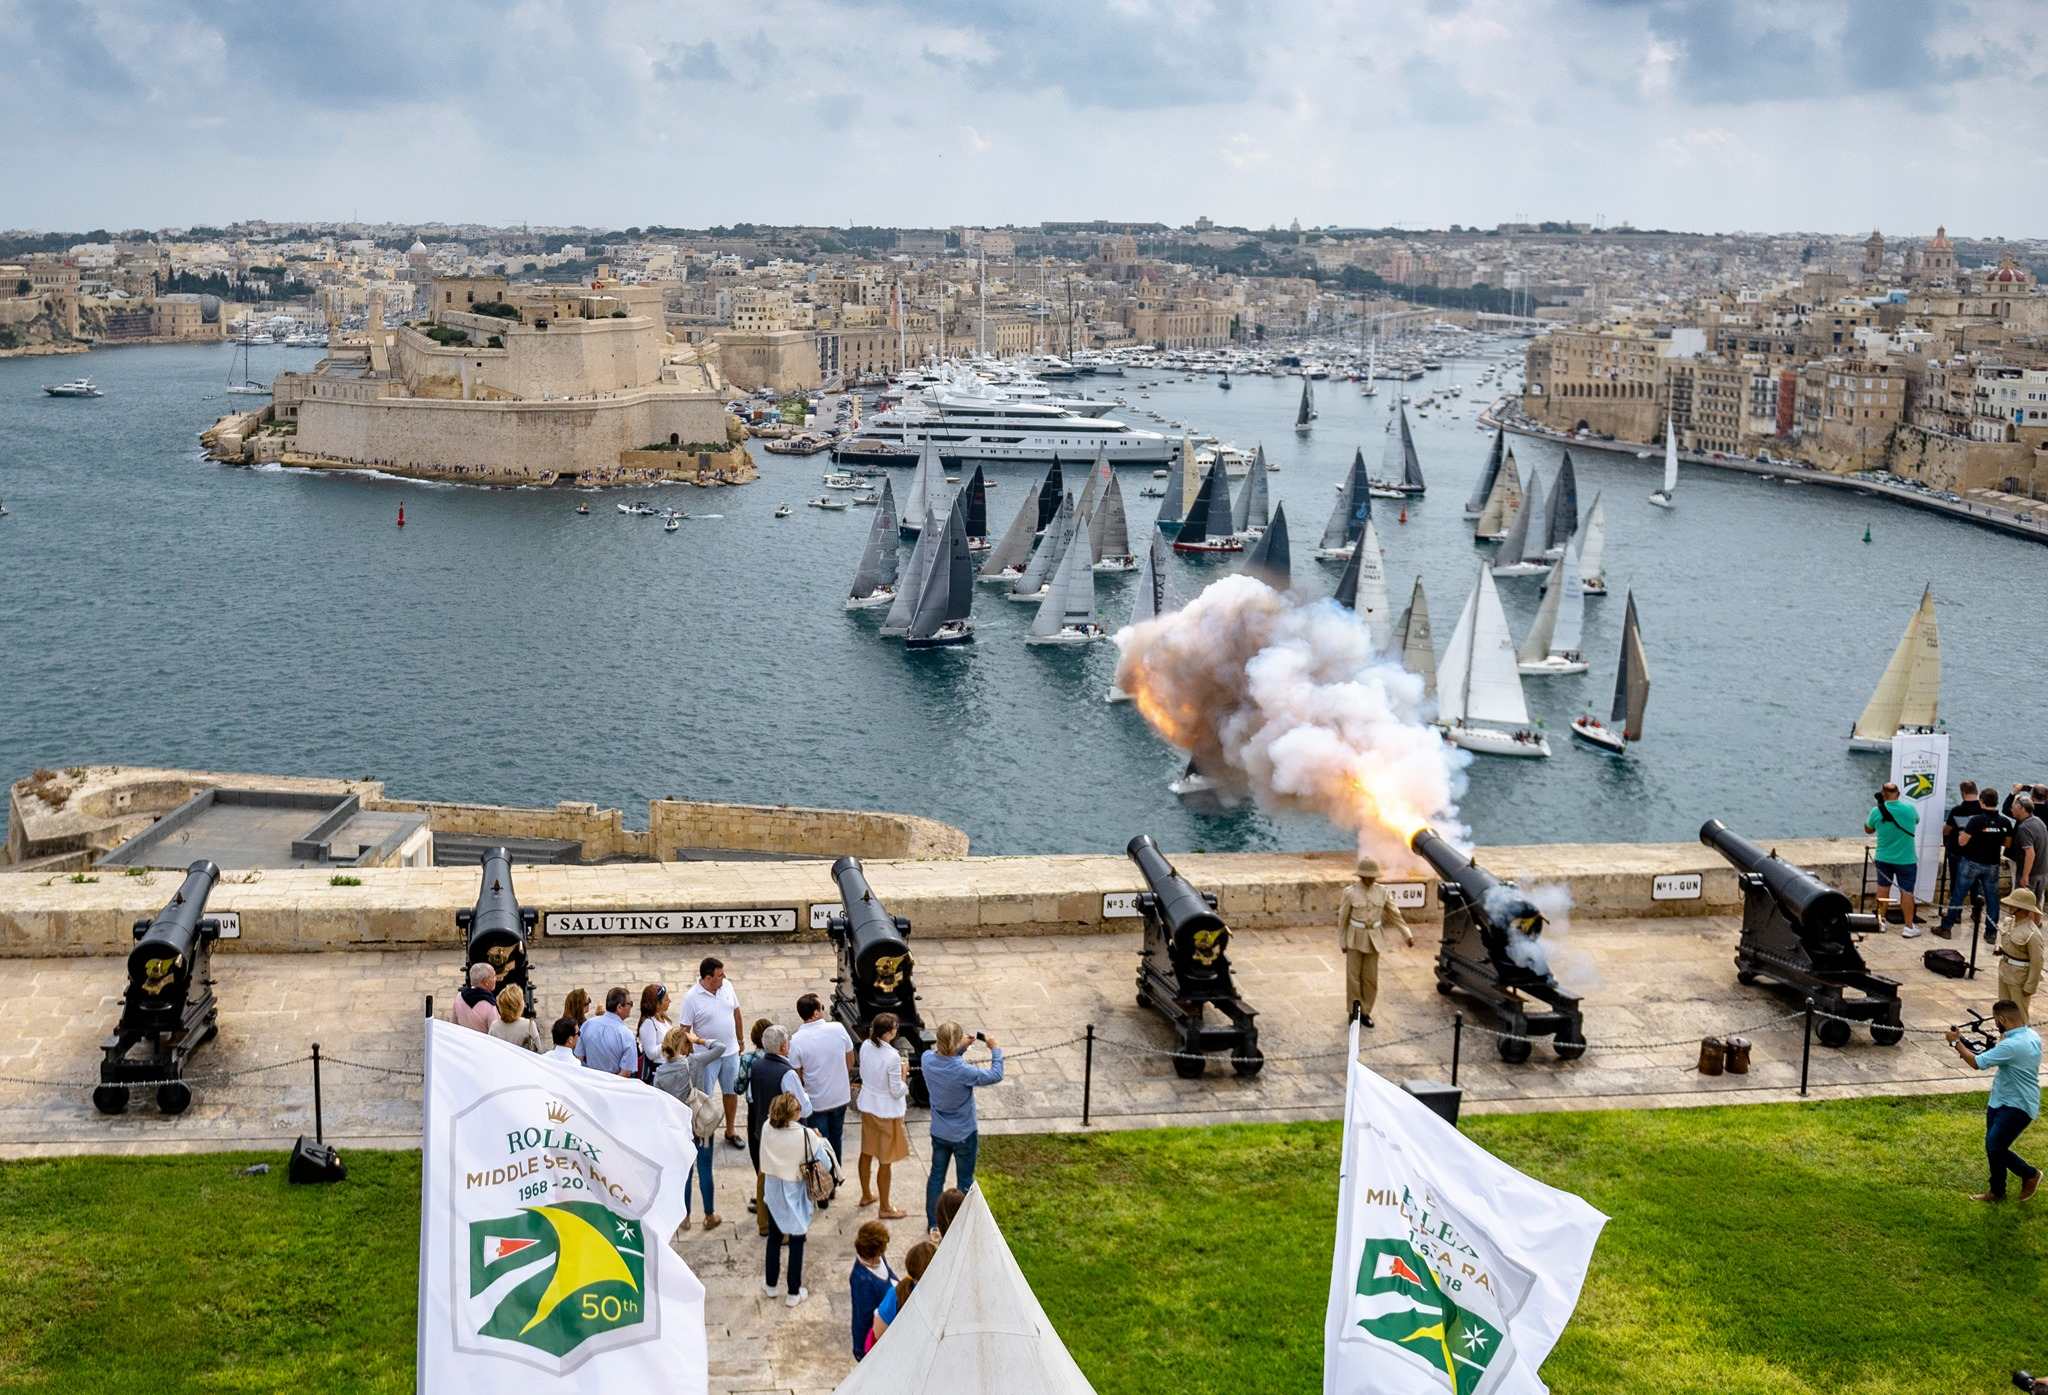 Cannons firing as the fleet start in Malta surrounded by historic looking buildings.